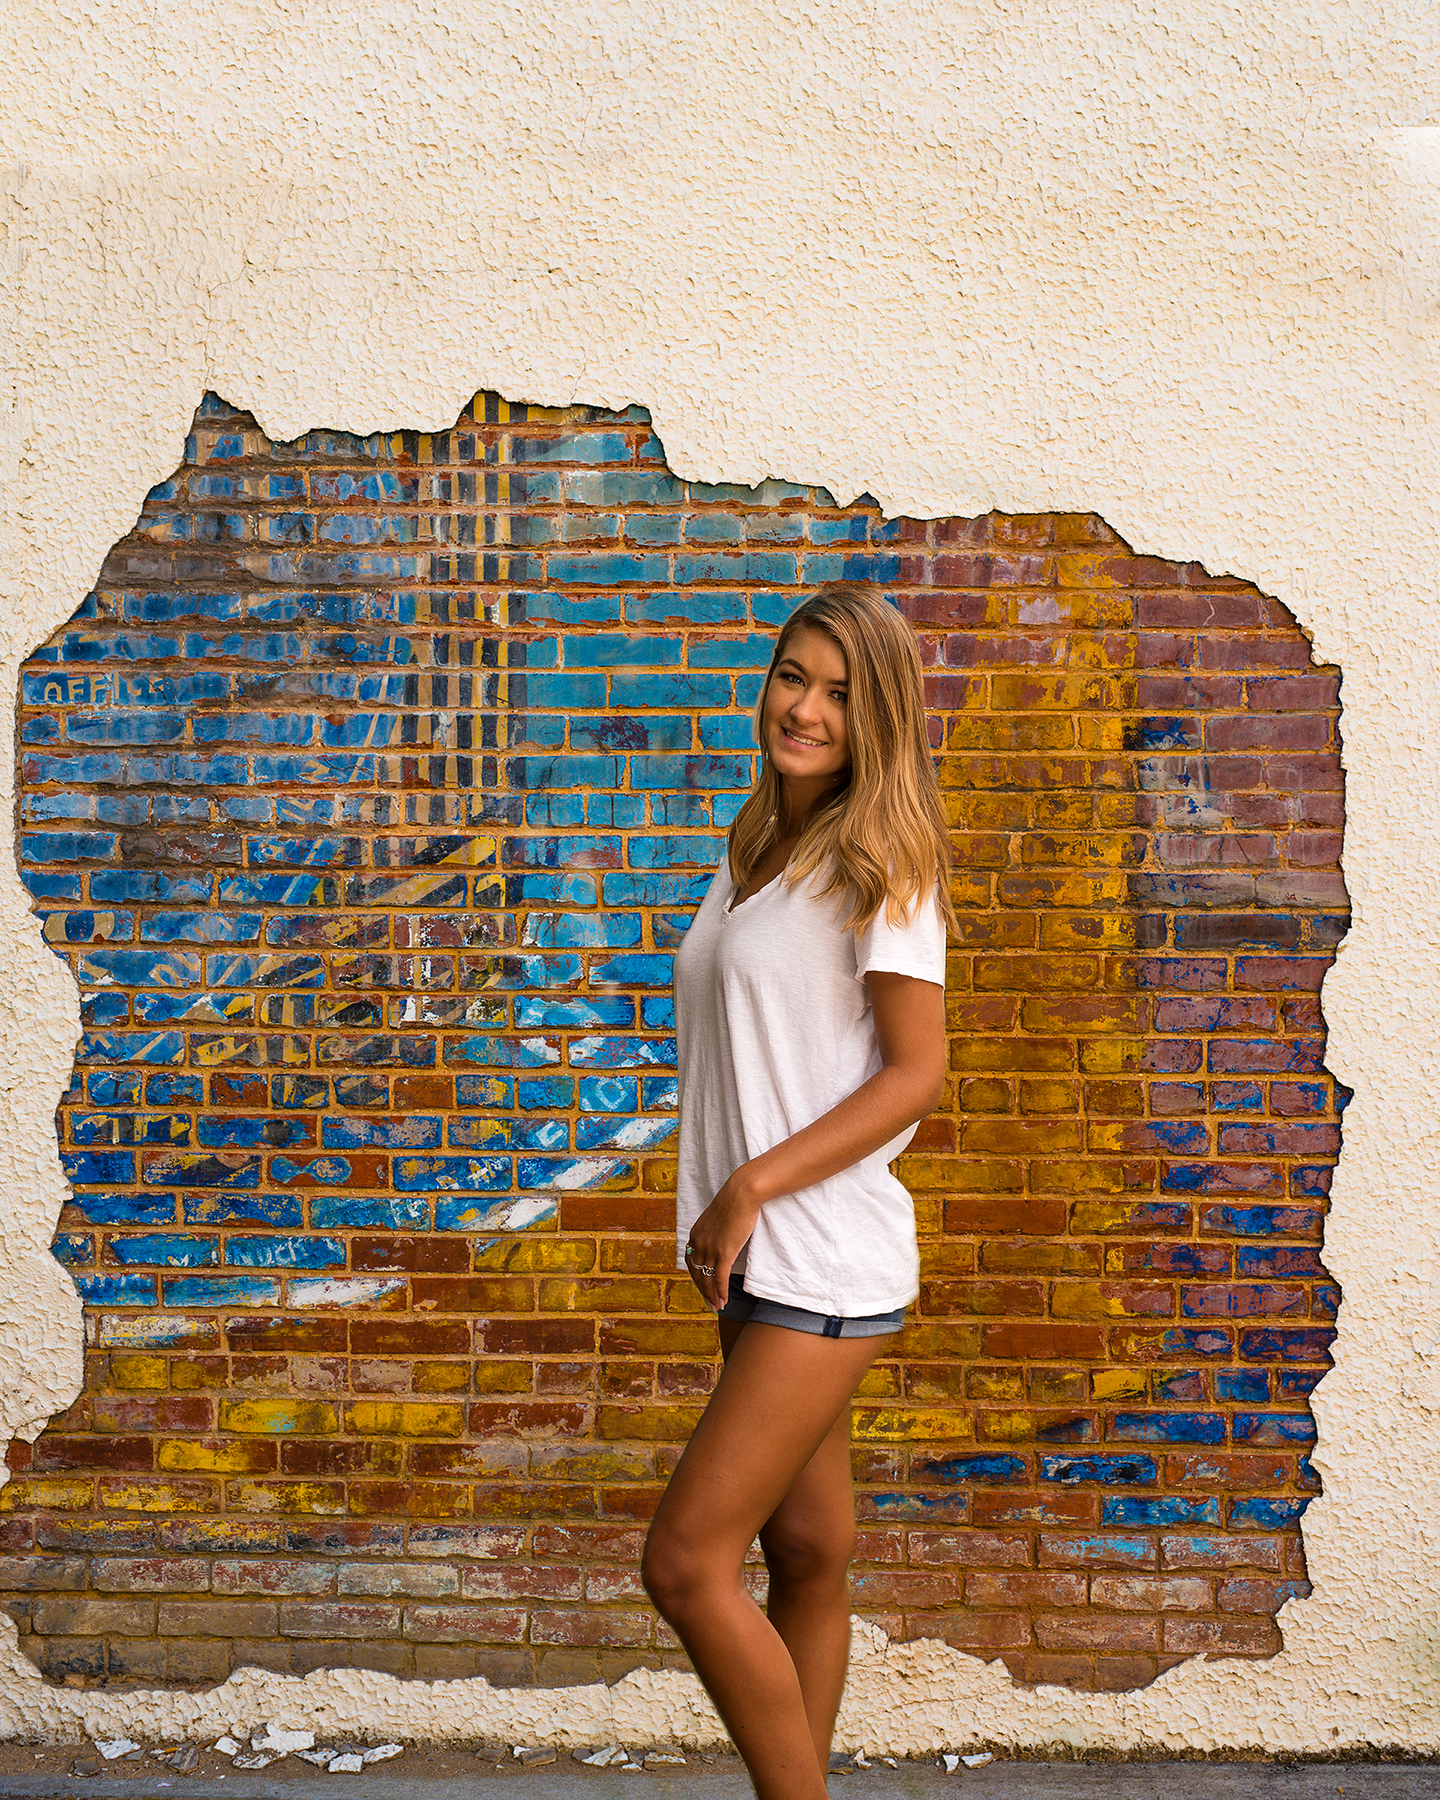 Senior portrait by graffiti wall in Marietta Georgia